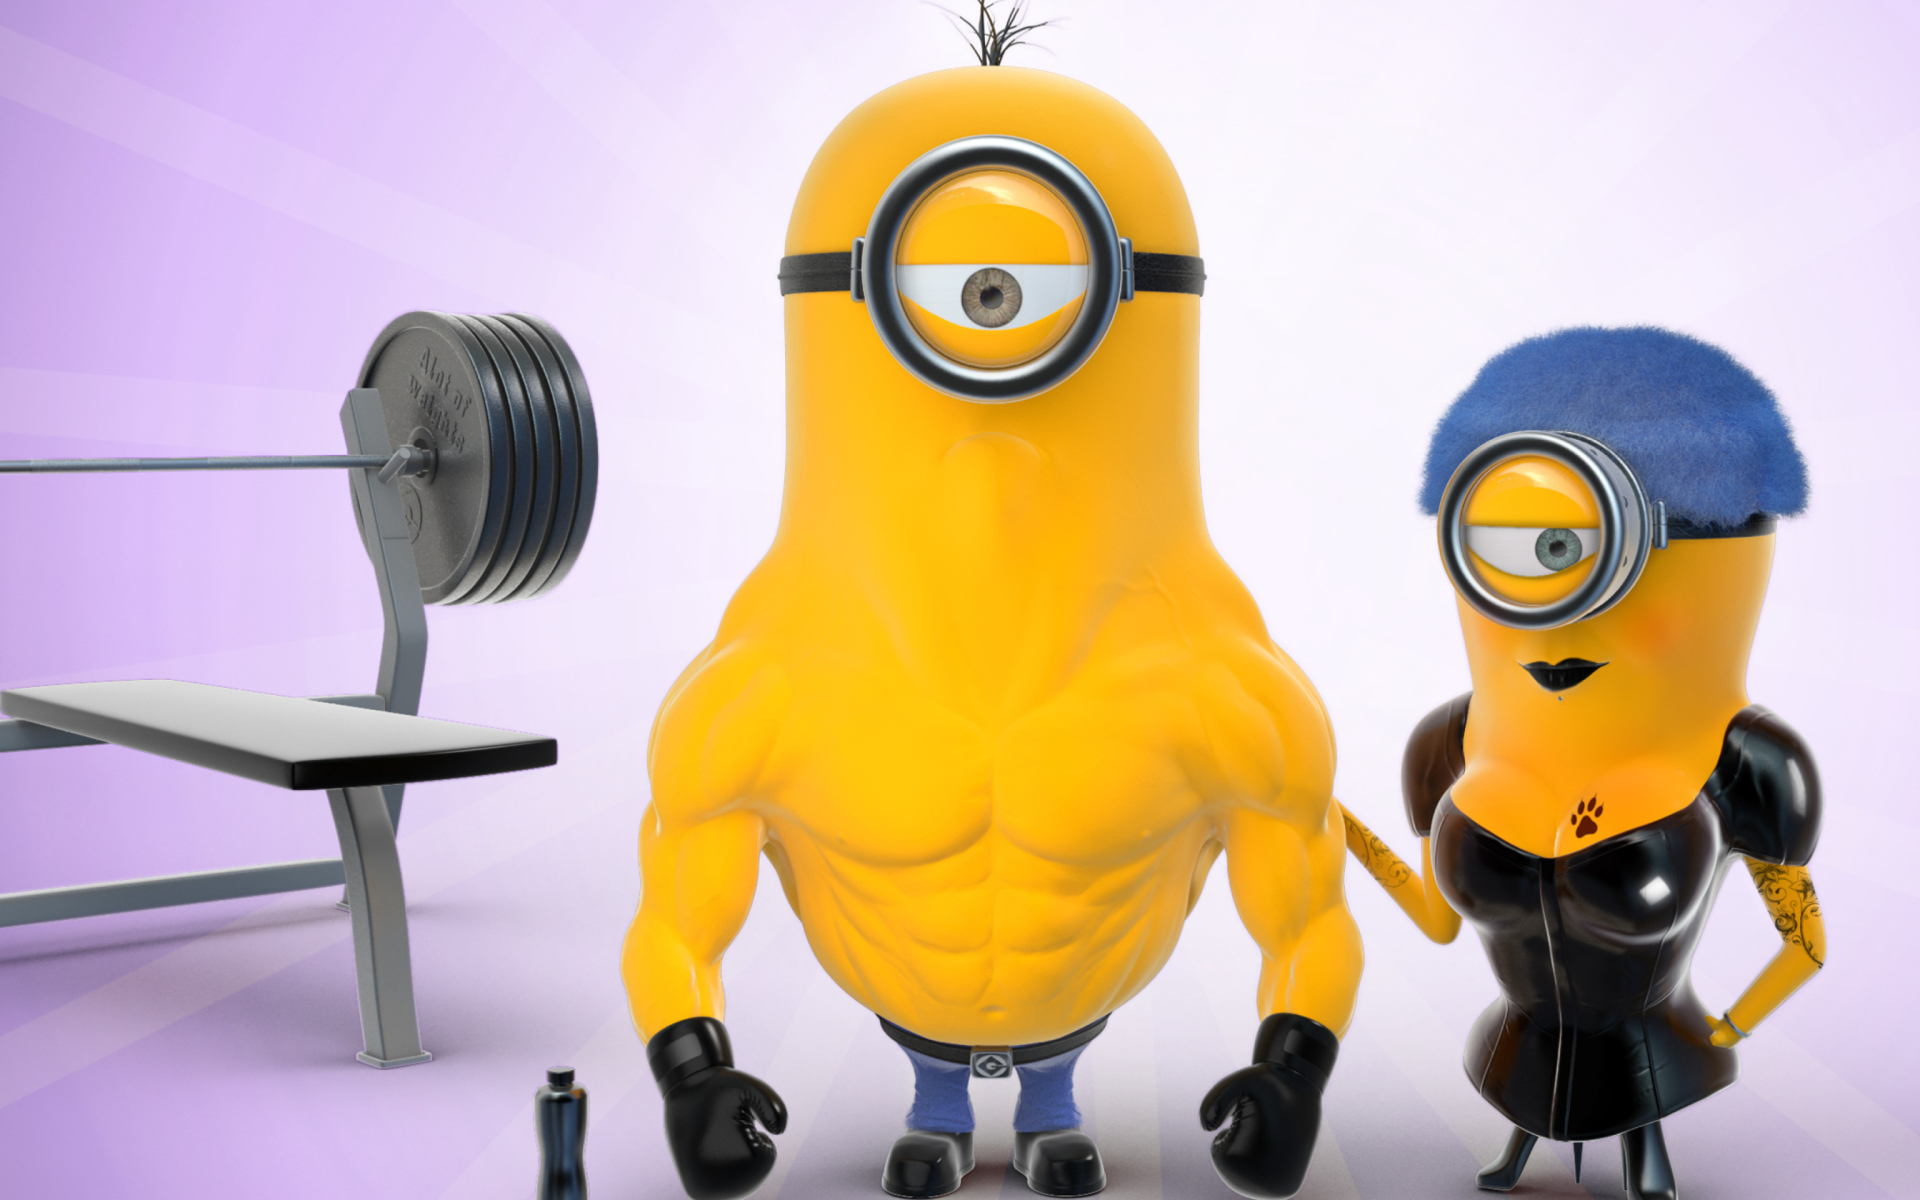 Funny Cute Minions Hd Wallpapers Hd Wallpapers Gifs 1920x1200